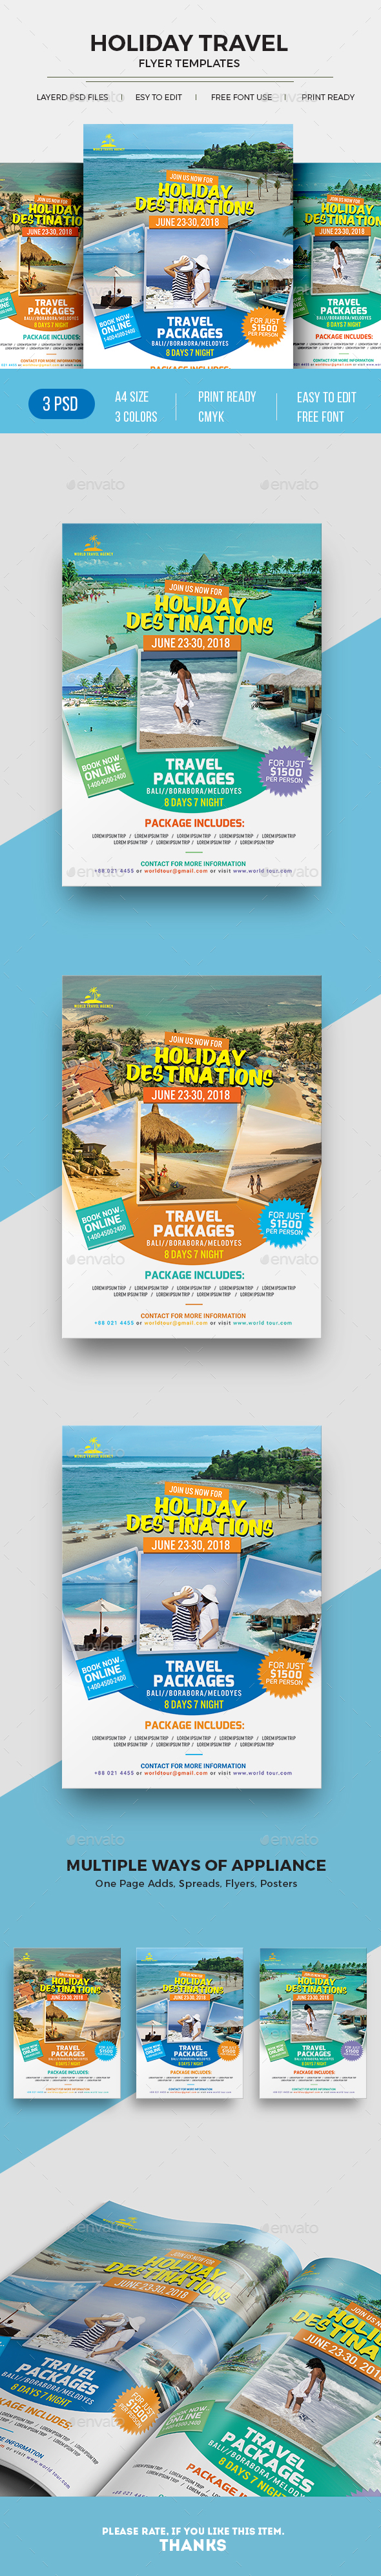 Excellent 1.5 Inch Hexagon Template Huge 101 Modern Resume Samples Rectangular 1500 Claim Form Template 16 Birthday Invitation Templates Youthful 18 Year Old Resume Sample White2 Page Resumes Samples Travel Flyer Graphics, Designs \u0026 Templates From GraphicRiver